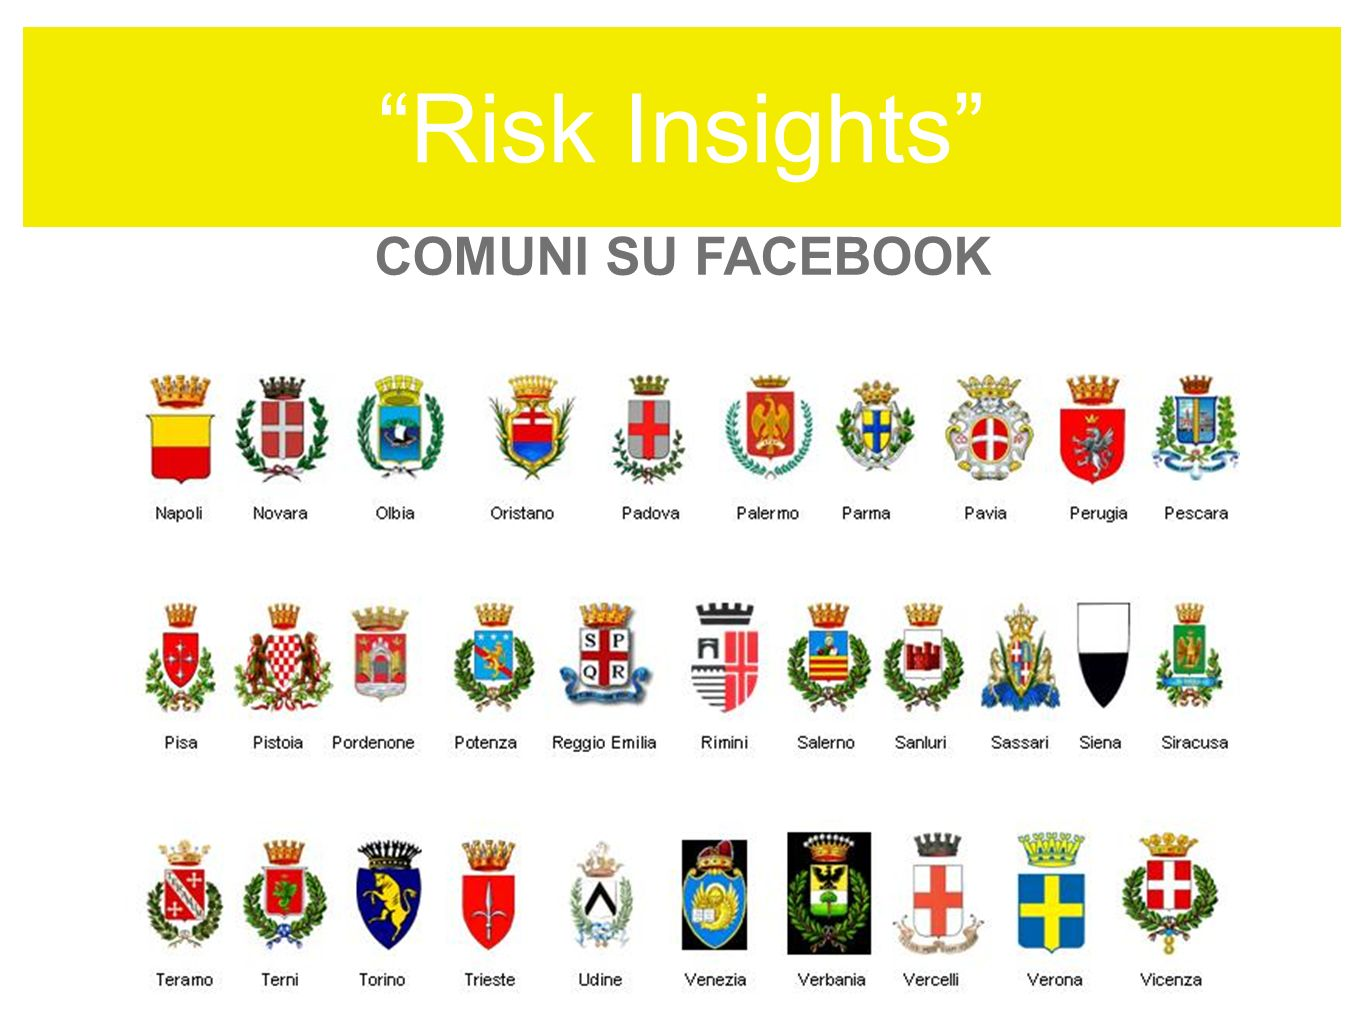 Risk Insights COMUNI SU FACEBOOK